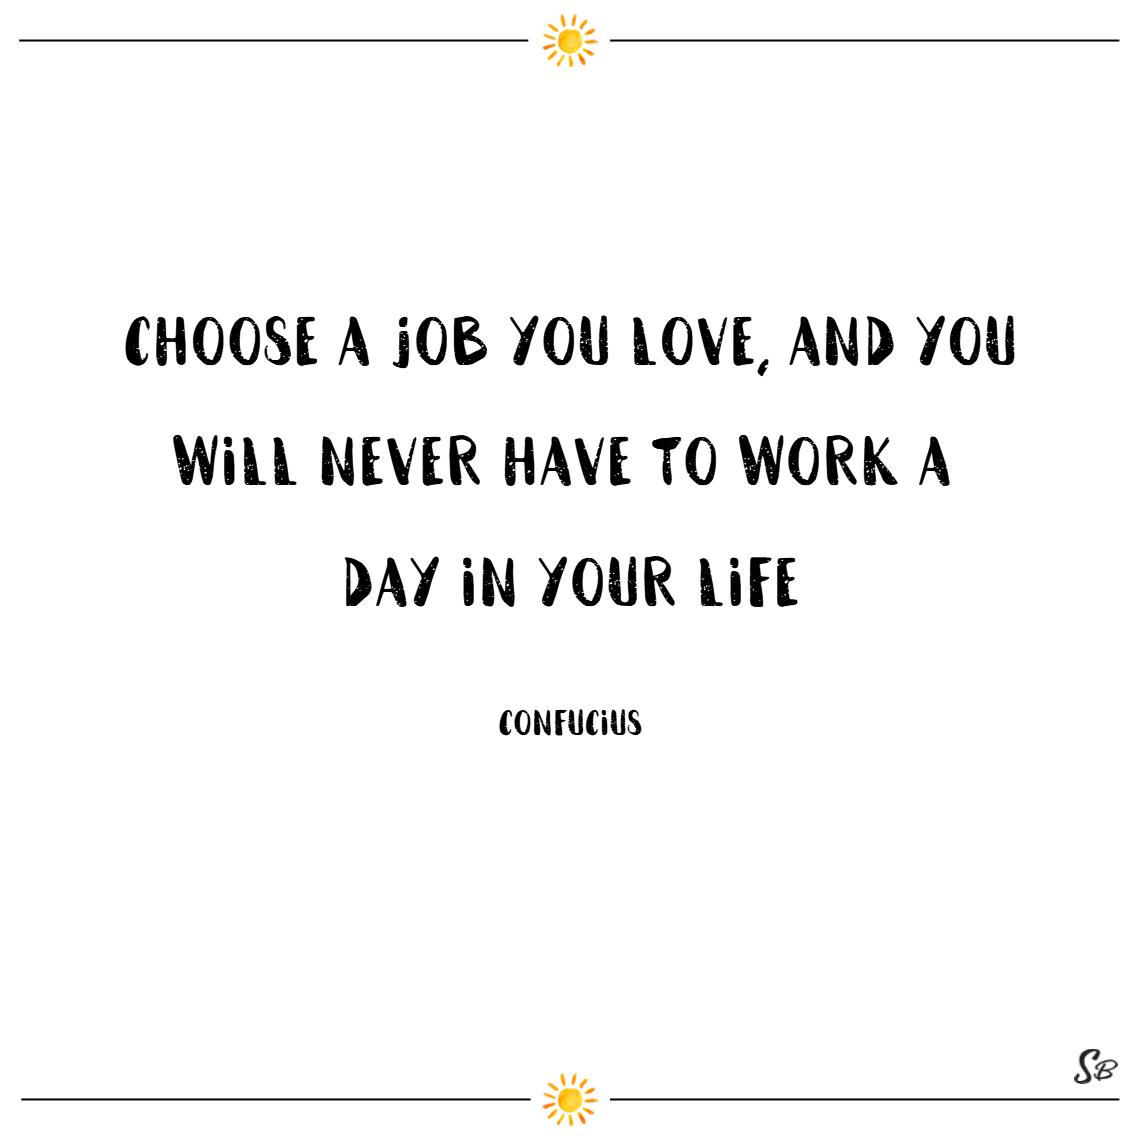 Choose a job you love, and you will never have to work a day in your life. – confucius